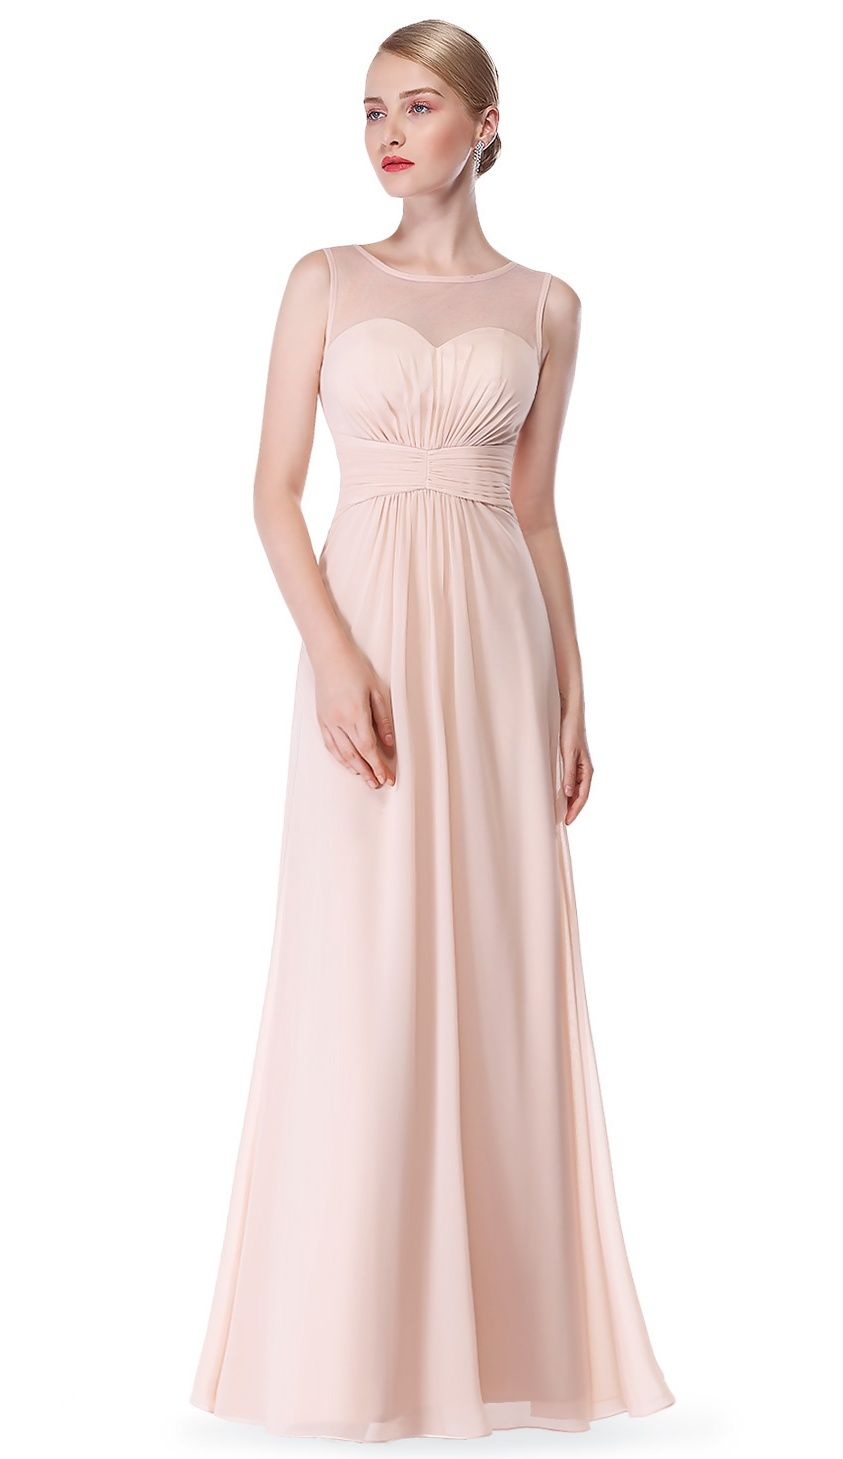 25558dcba5 Ever-Pretty Women s Sexy Long A-Line Sleeveless Tulle Neckline Formal  Evening Prom Party Bridesmaid Maxi Dresses for Women 08761 Blush US  14 Tulle